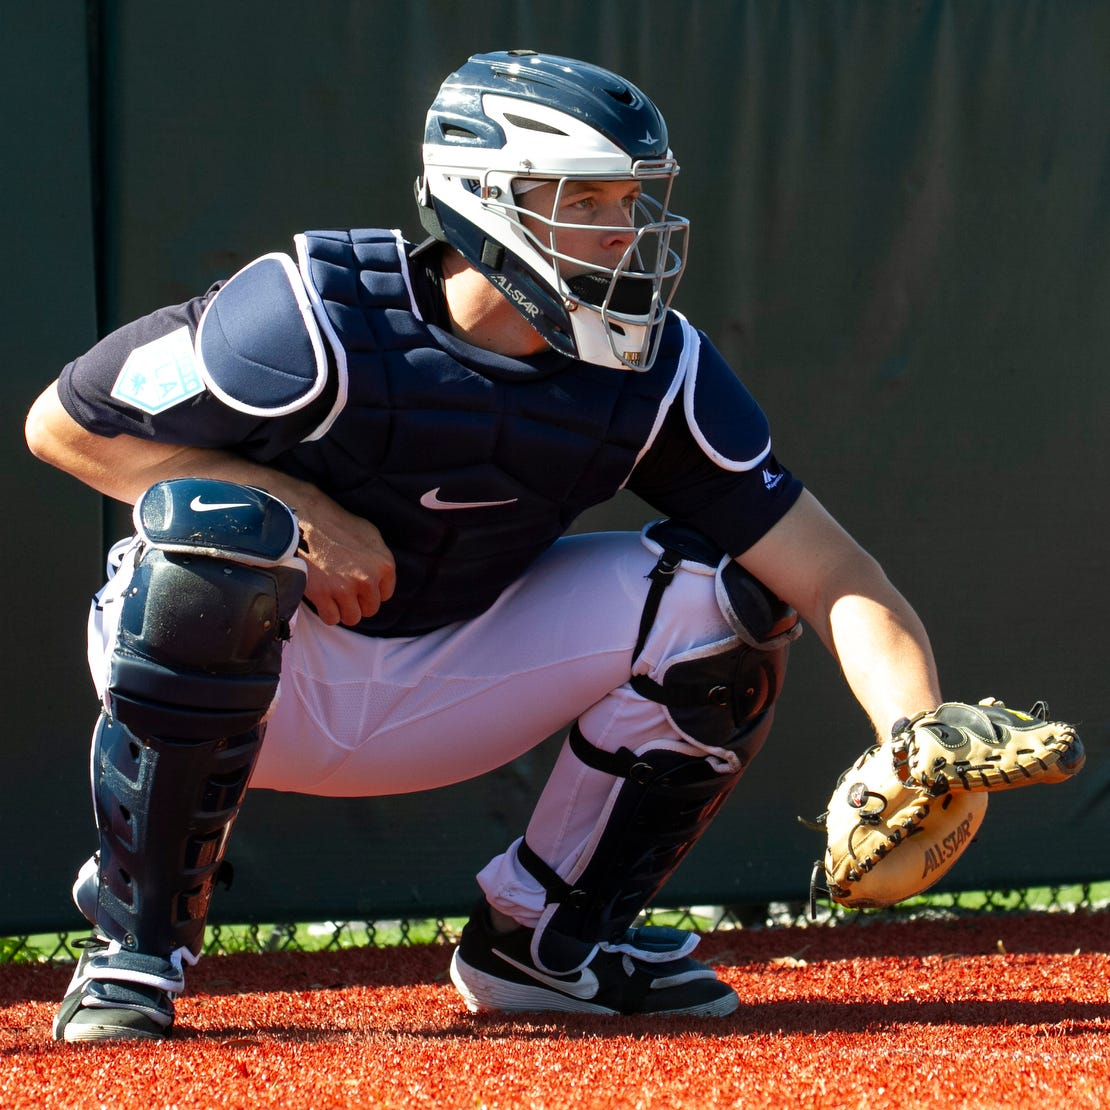 Taking charge: Tigers rookie Greiner starting to assert his authority behind the plate